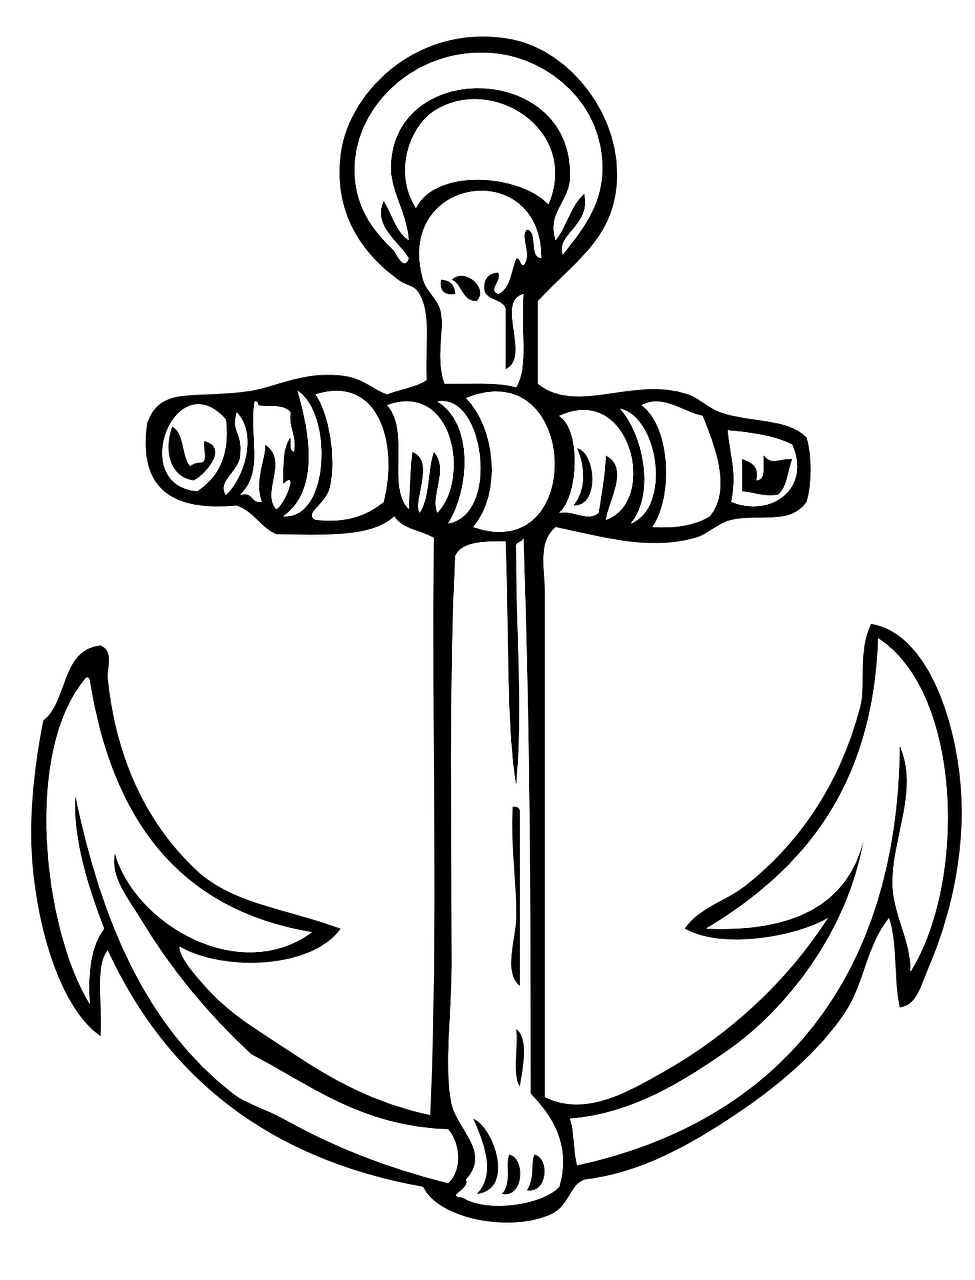 how to draw a anchor boat anchor drawing free download on clipartmag how a anchor draw to